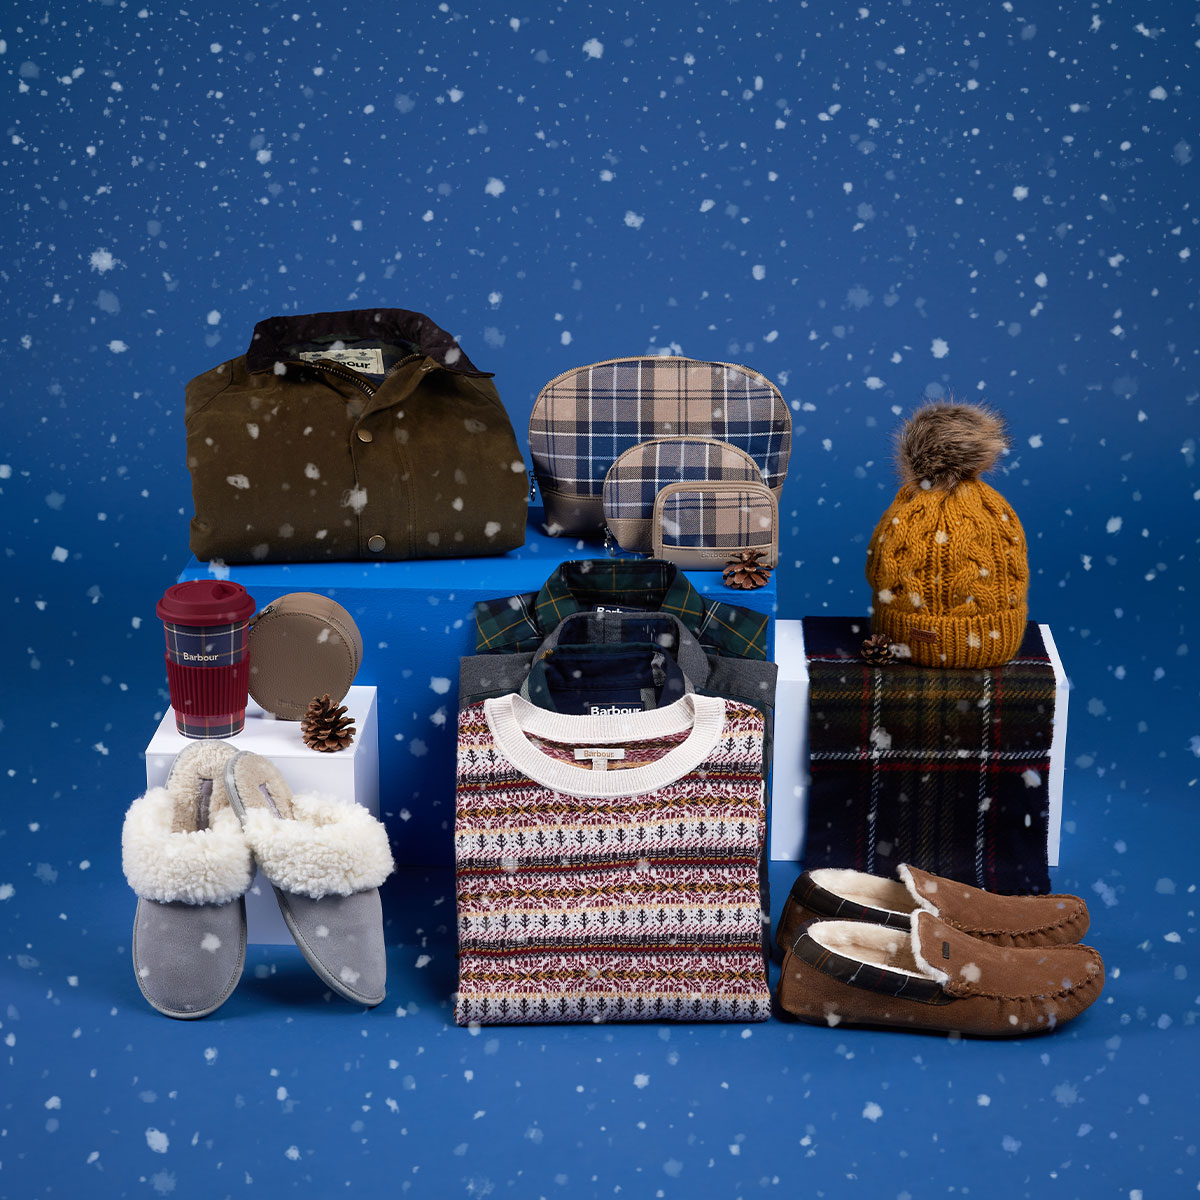 Background image for Barbour Christmas   Gift Guide